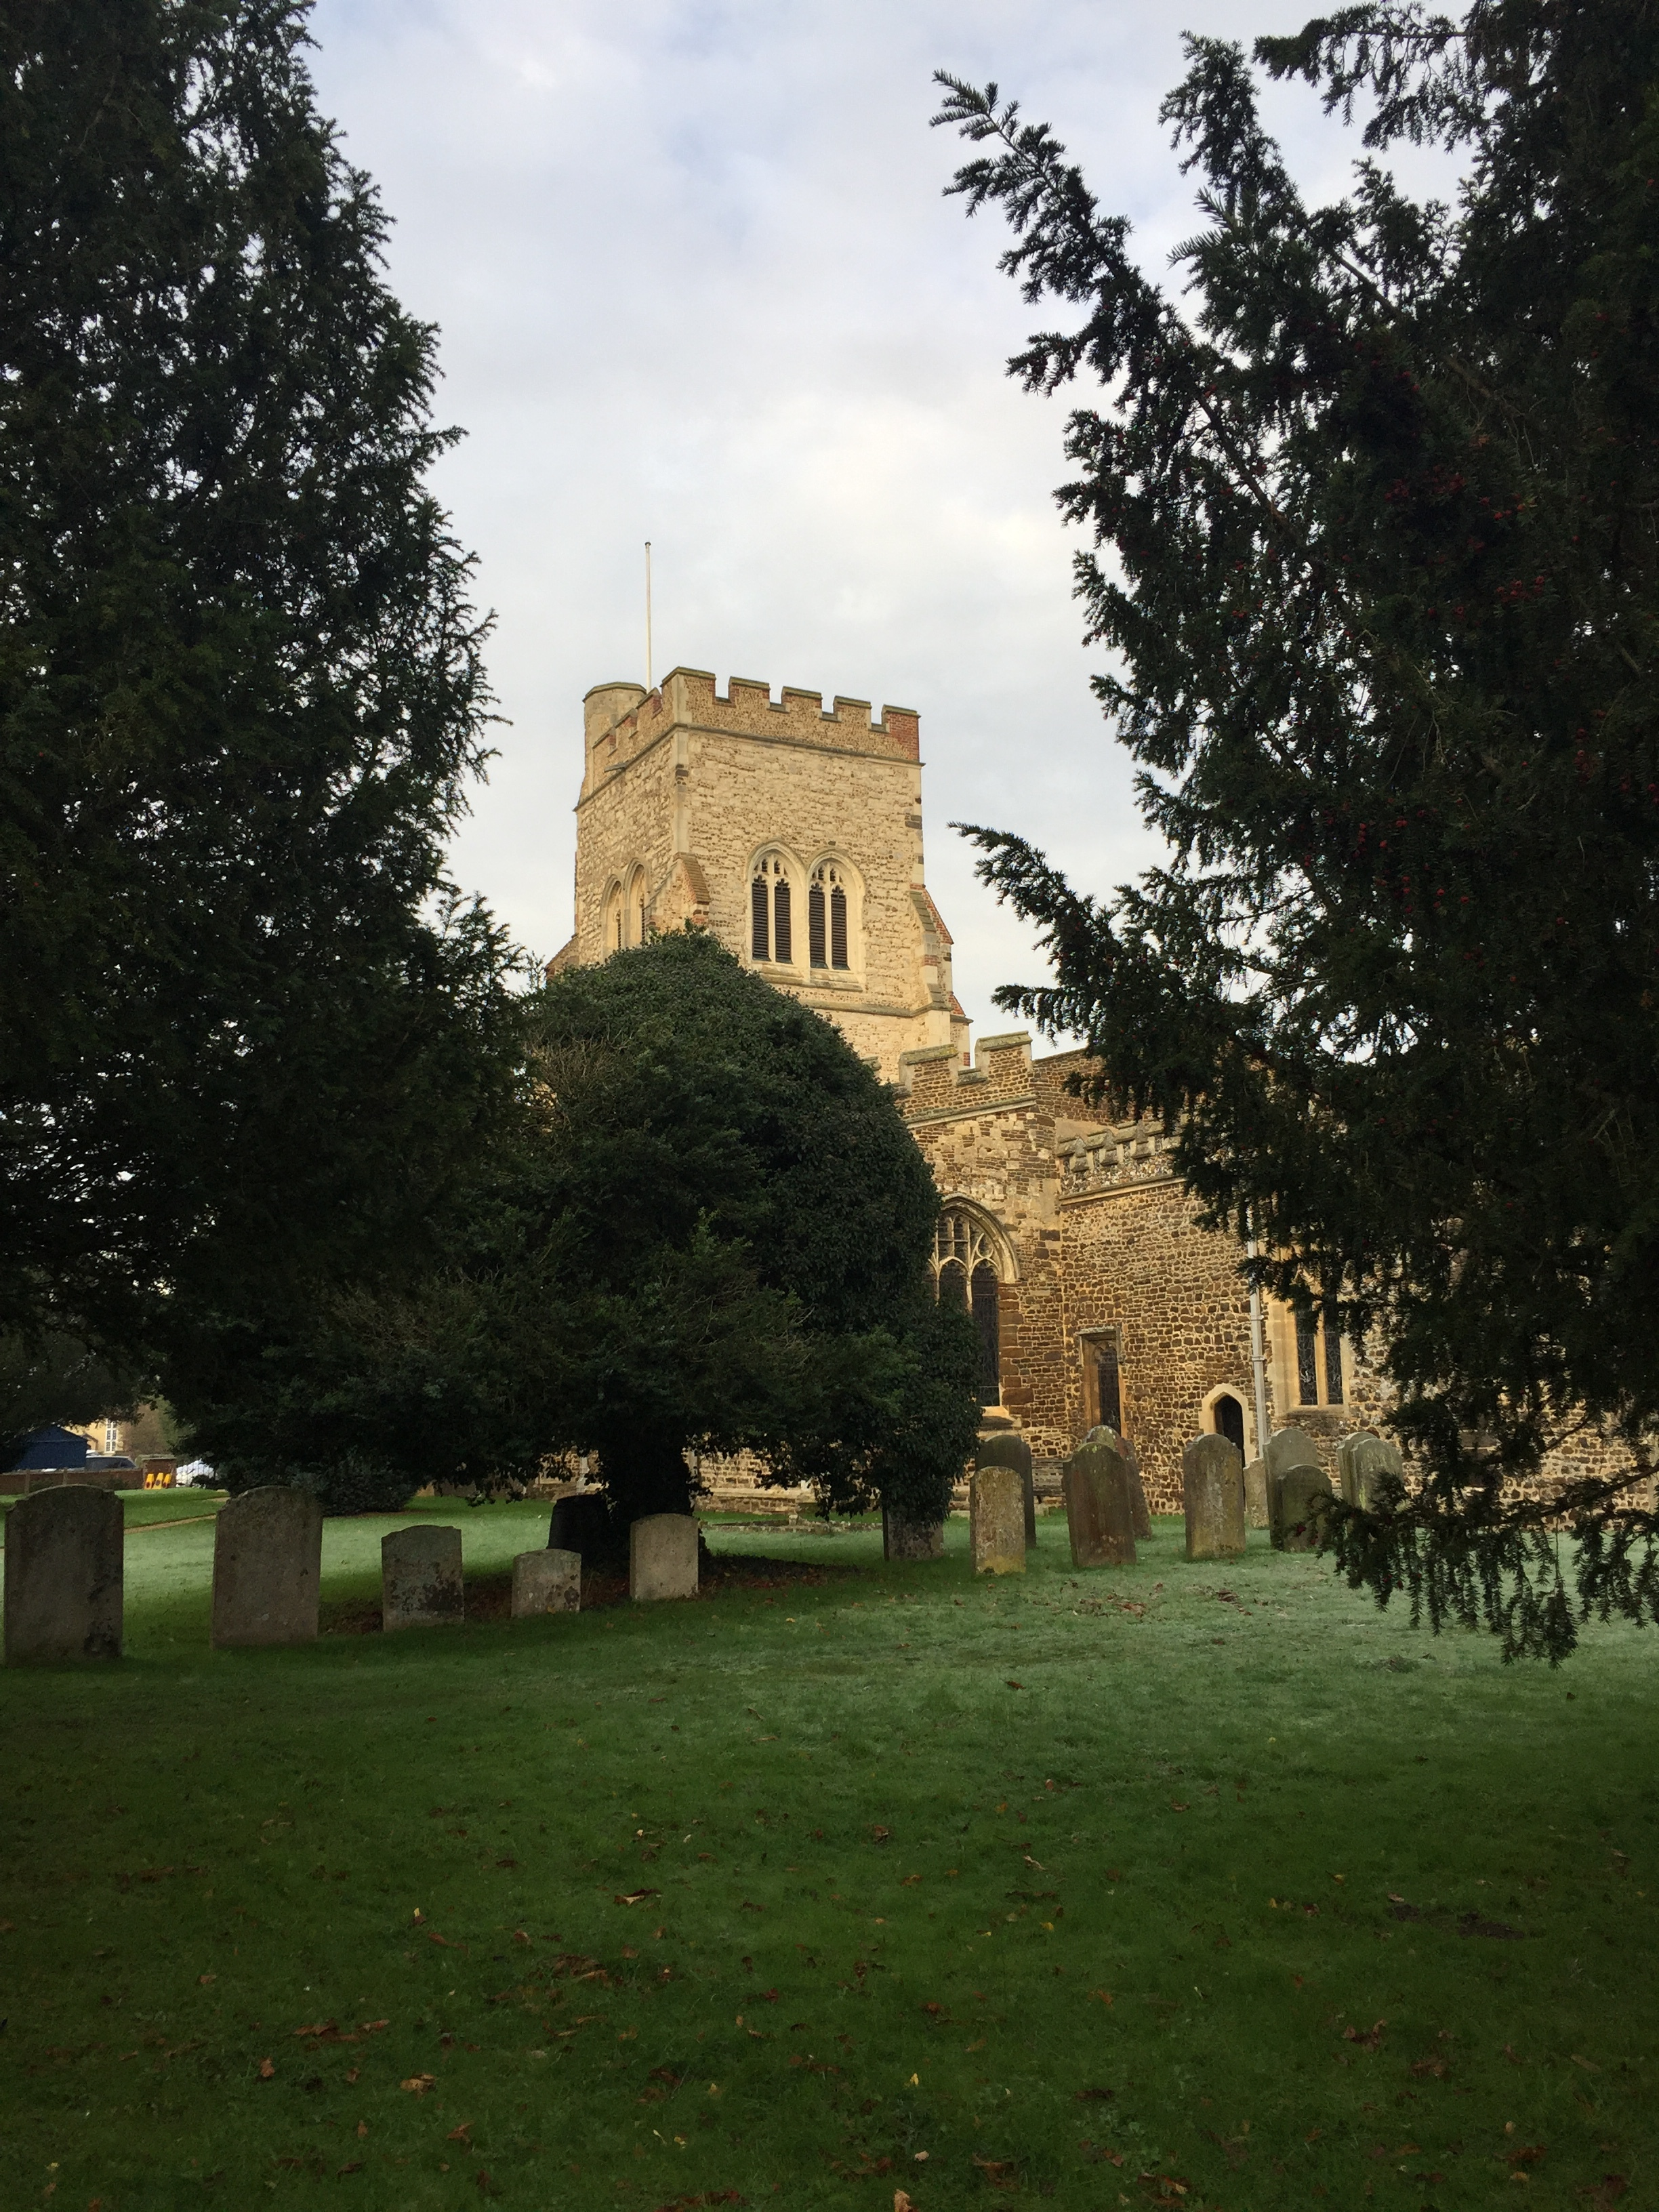 The parish church of Henlow, Bedfordshire, where Agnes Cooper was baptized in 1585 and married in 1614.